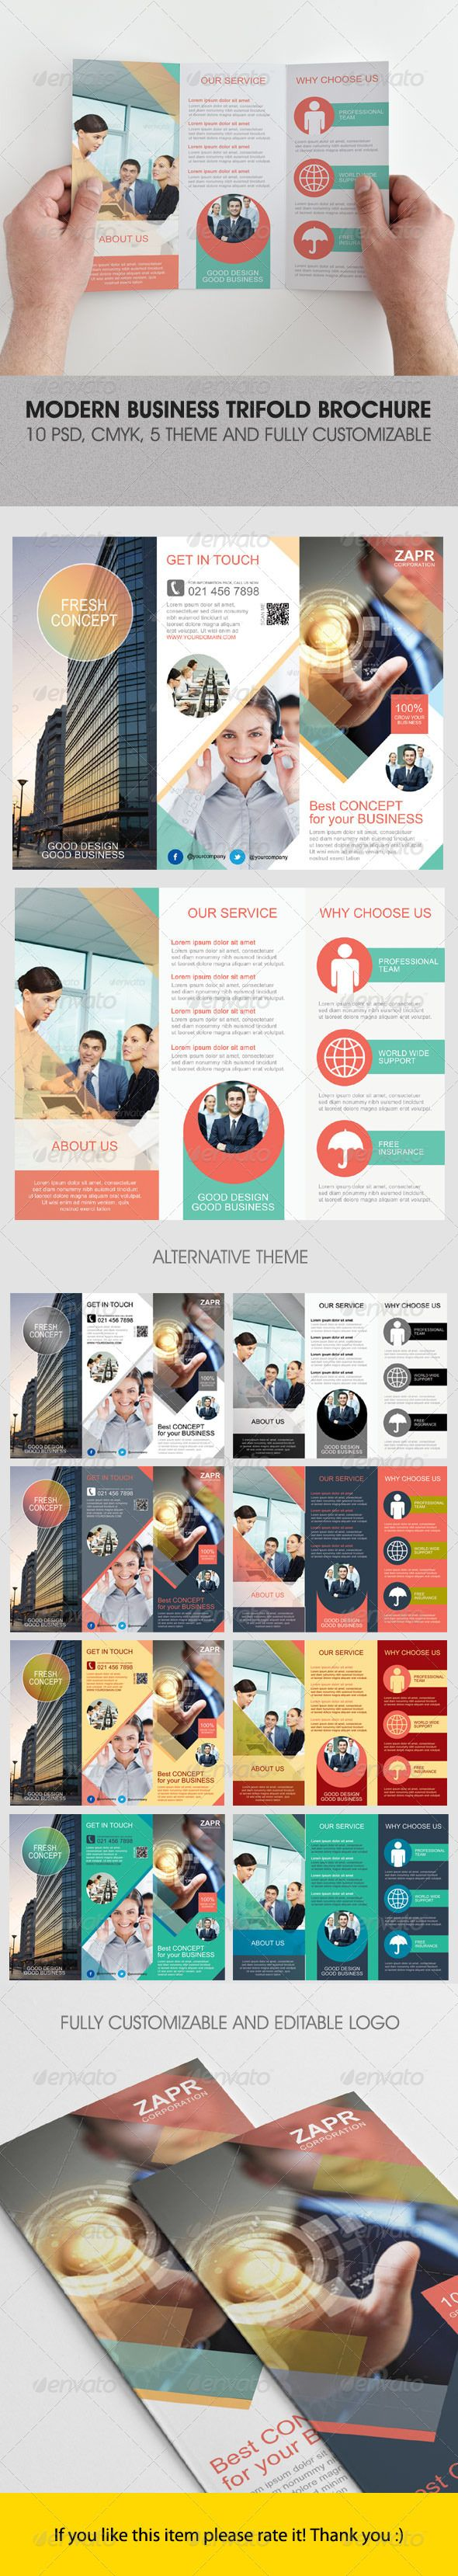 Modern Business Trifold Brochure #GraphicRiver Modern Business Trifold Brochure An elegant, professional, simple and ultra-clean layout for your Brochure.